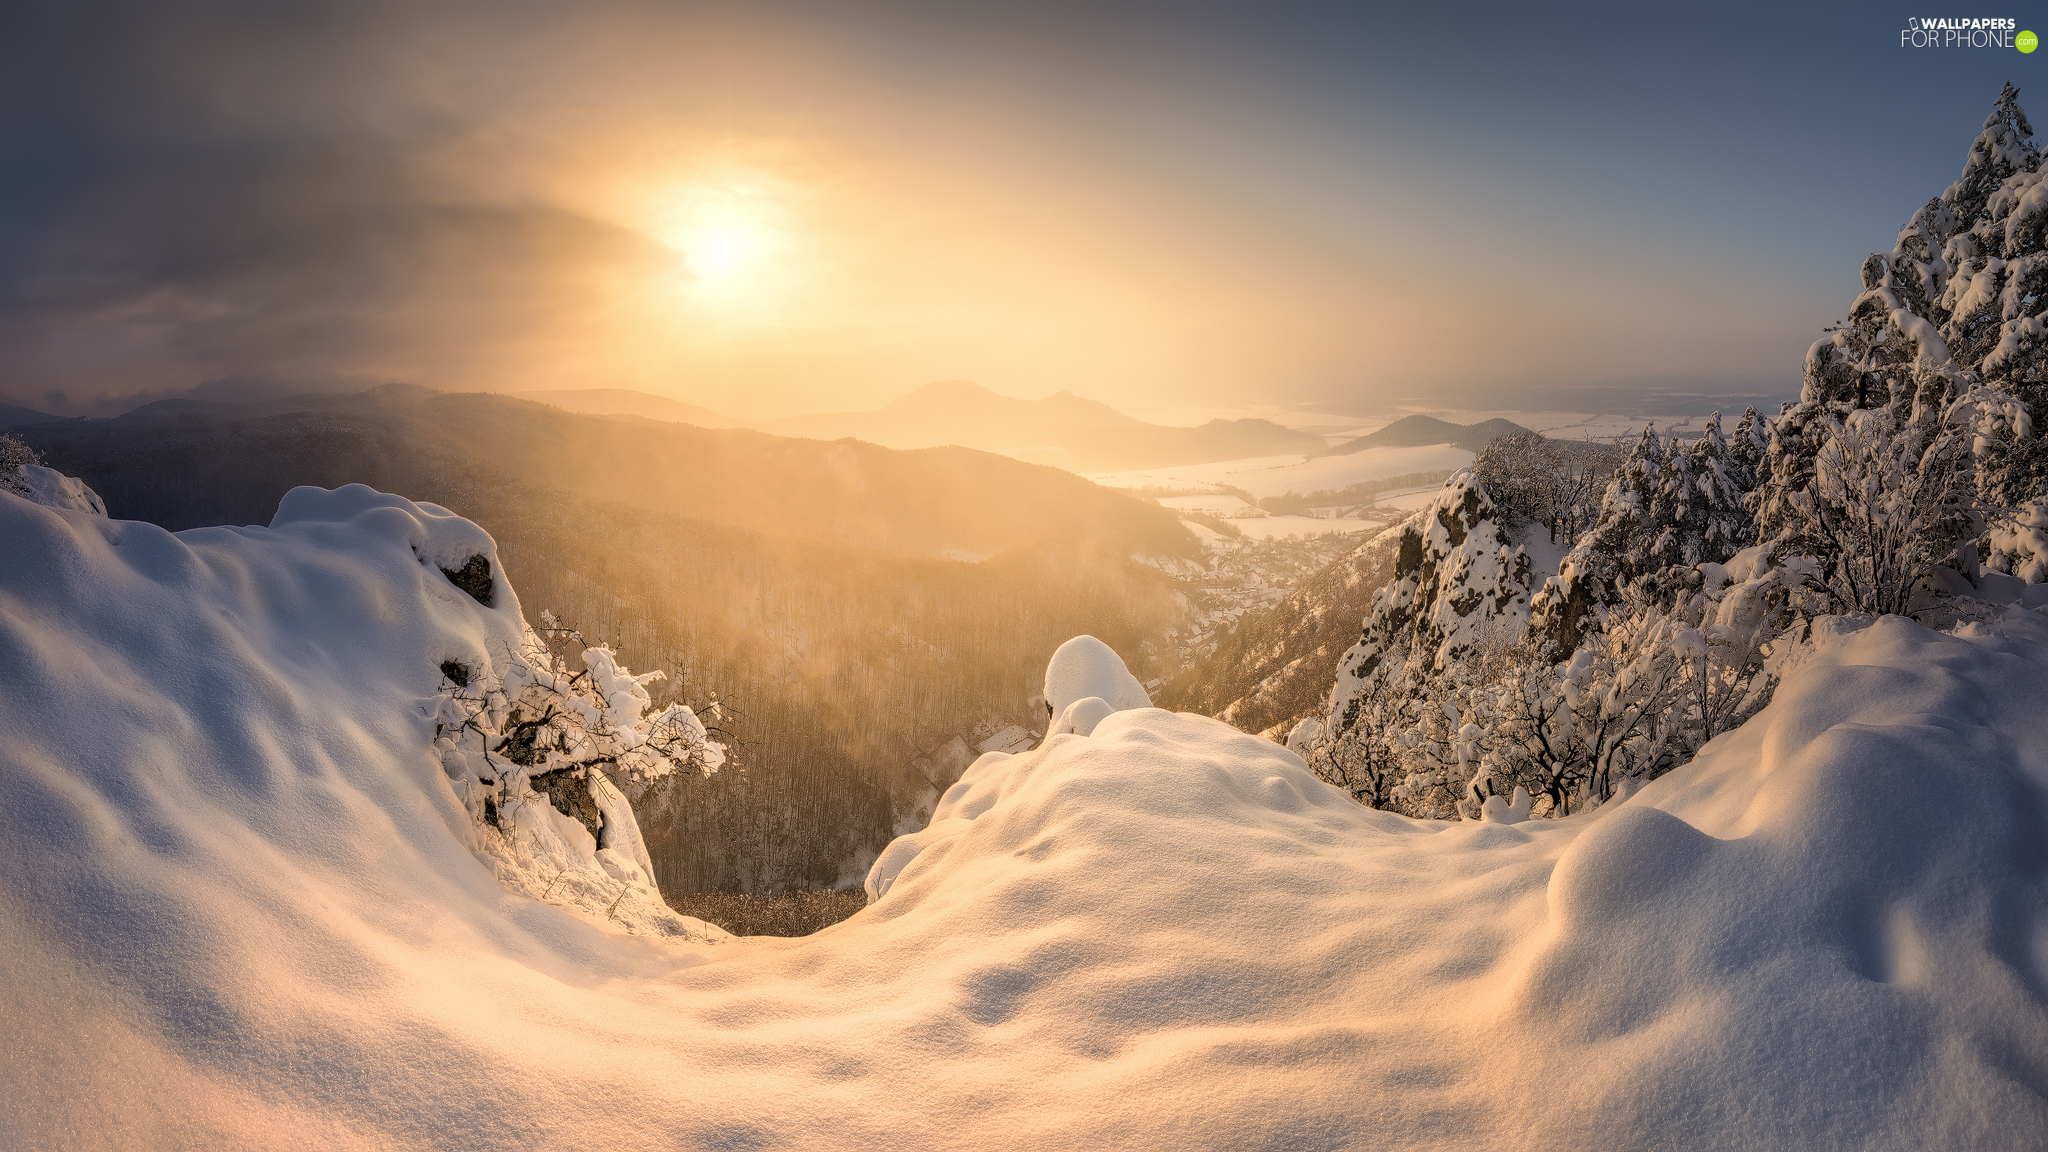 Snowy, Mountains, viewes, Sunrise, trees, winter